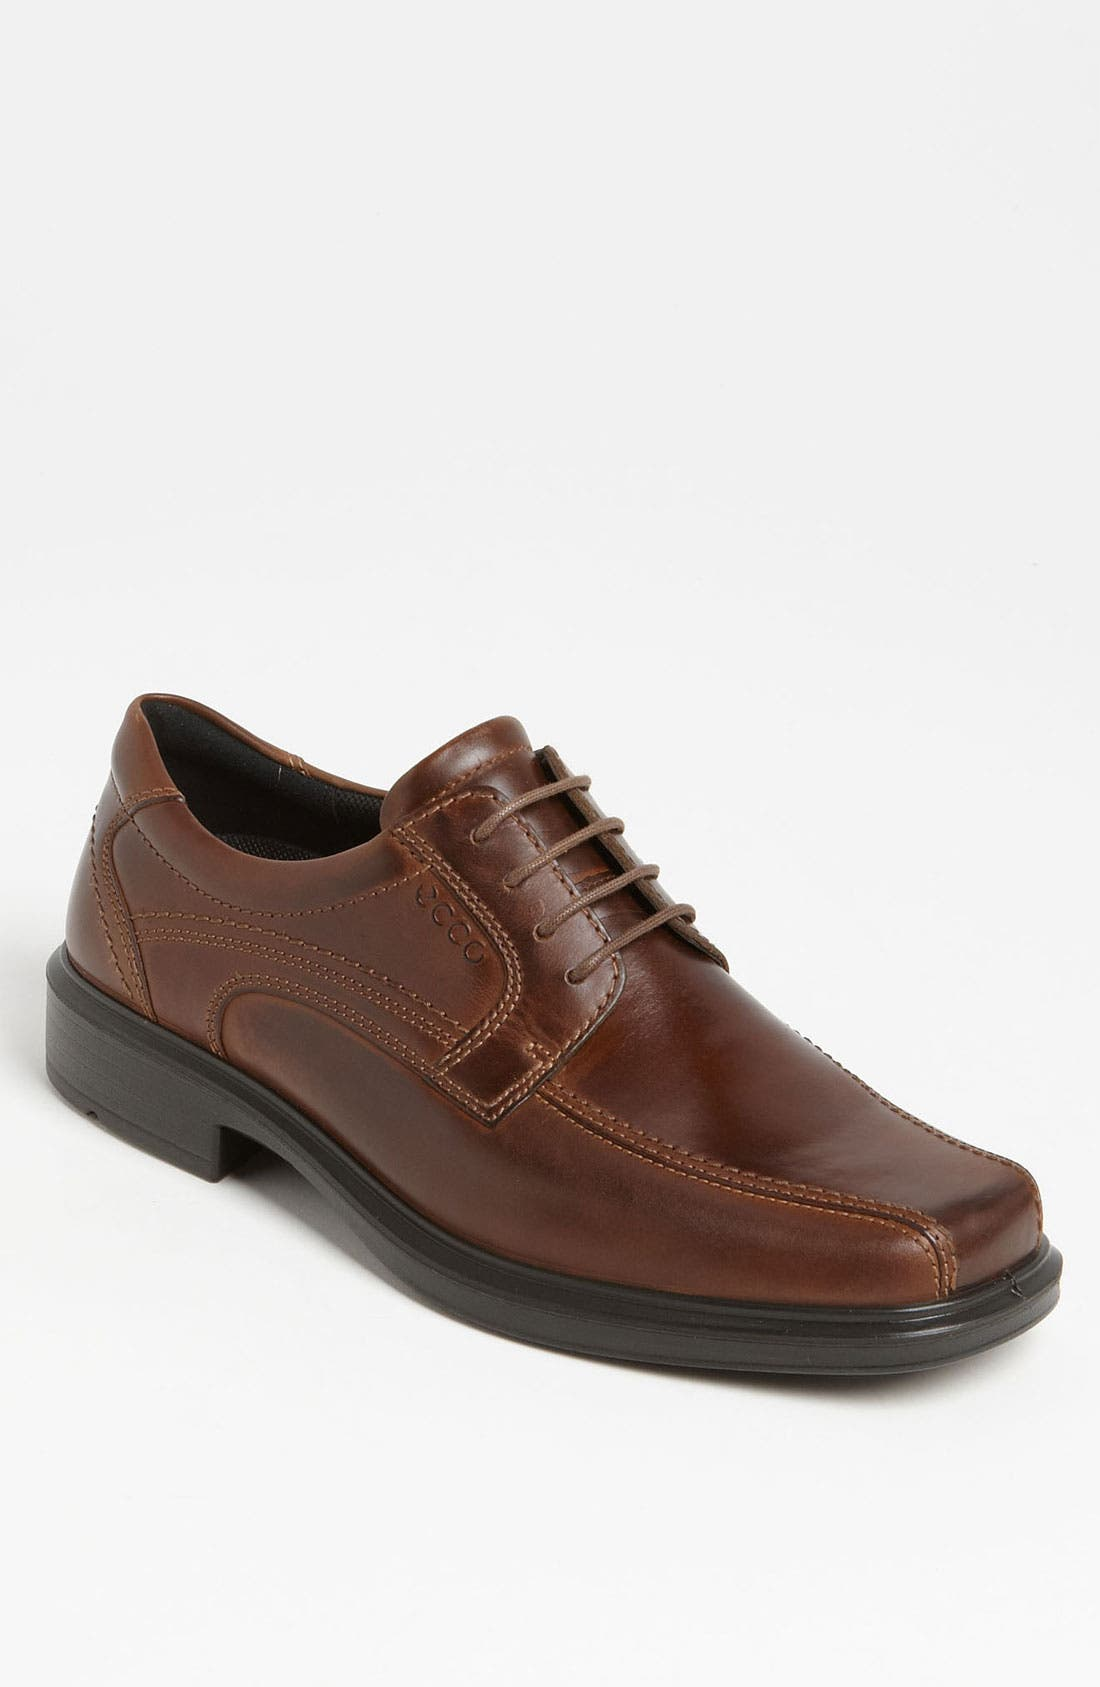 Alternate Image 1 Selected - ECCO 'Helsinki' Square Bike Toe Oxford (Men)